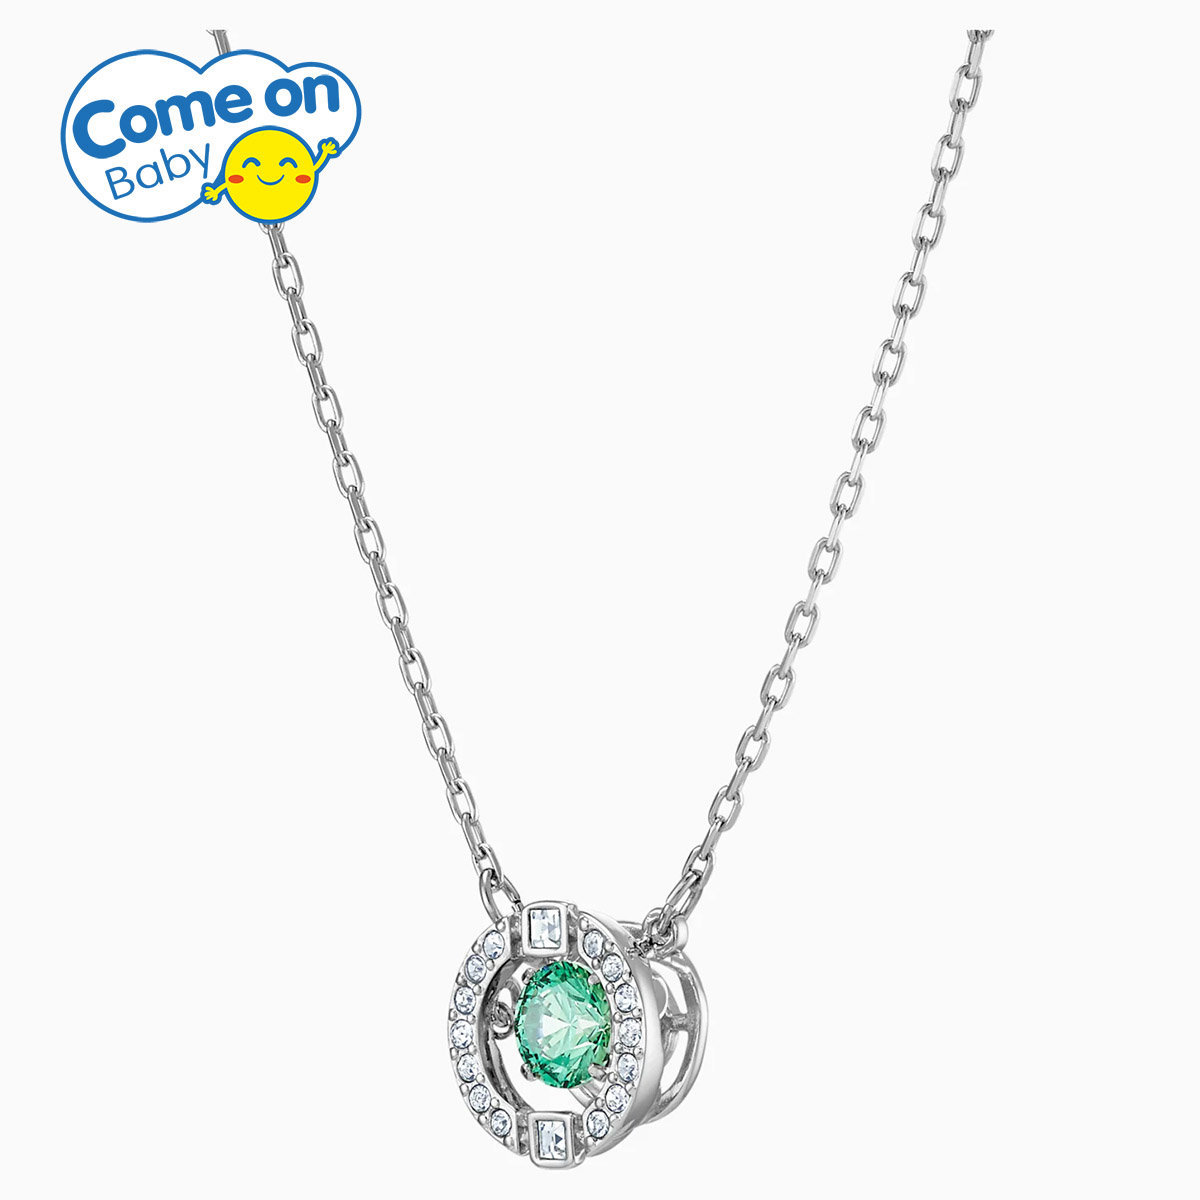 SWAROVSKI - Sparkling Dance Round Necklace - Green, Rhodium Plated [5496308]